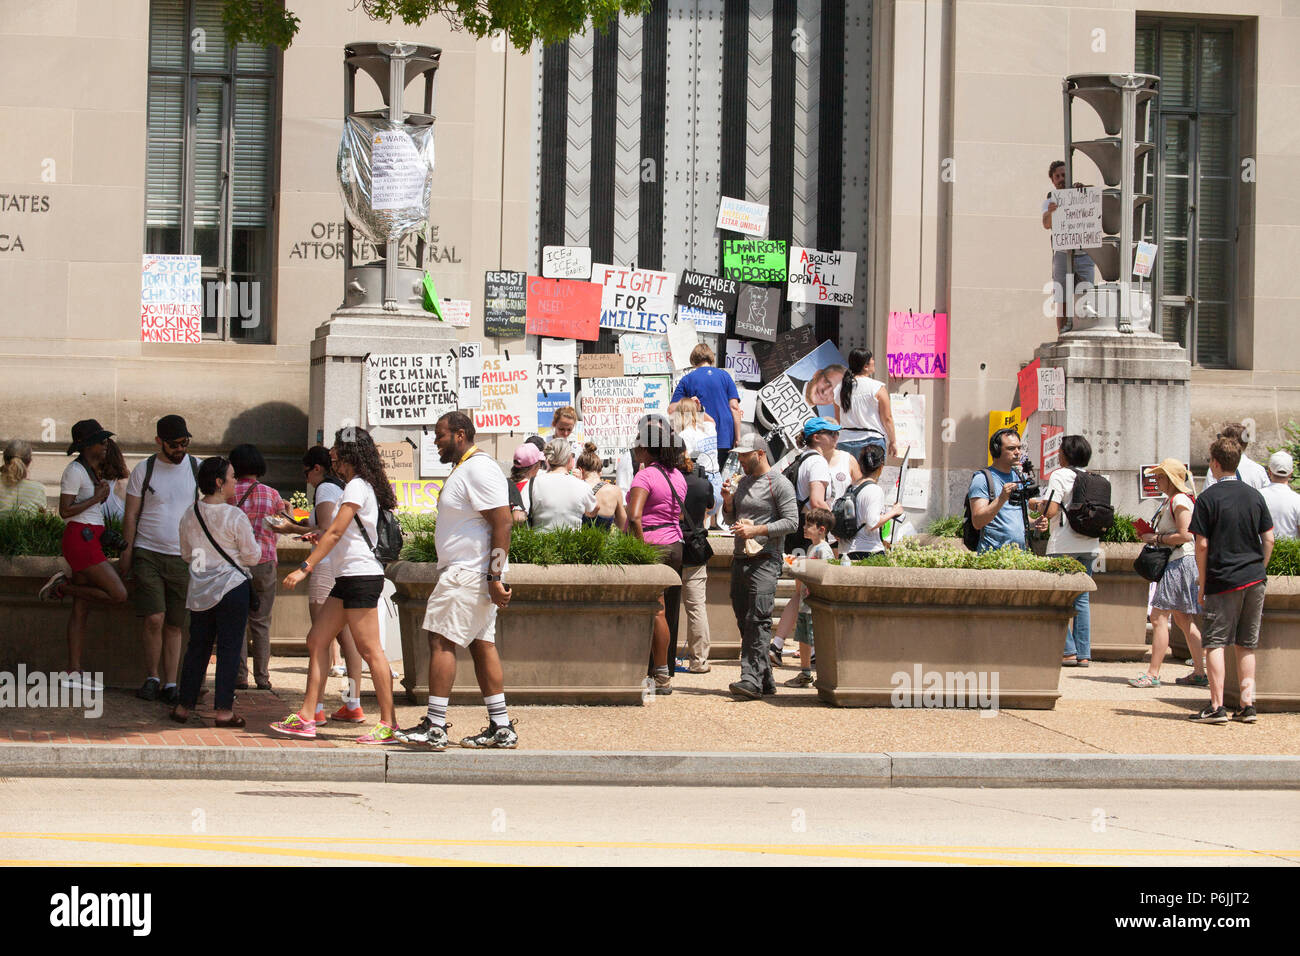 Washington DC, USA. 30th Jun, 2018. People attach protest signs to the doors of the Department of Justice during the Families Belong Together Rally in Washington, D.C., June 30, 2018. Credit: Robert Meyers/Alamy Live News Stock Photo